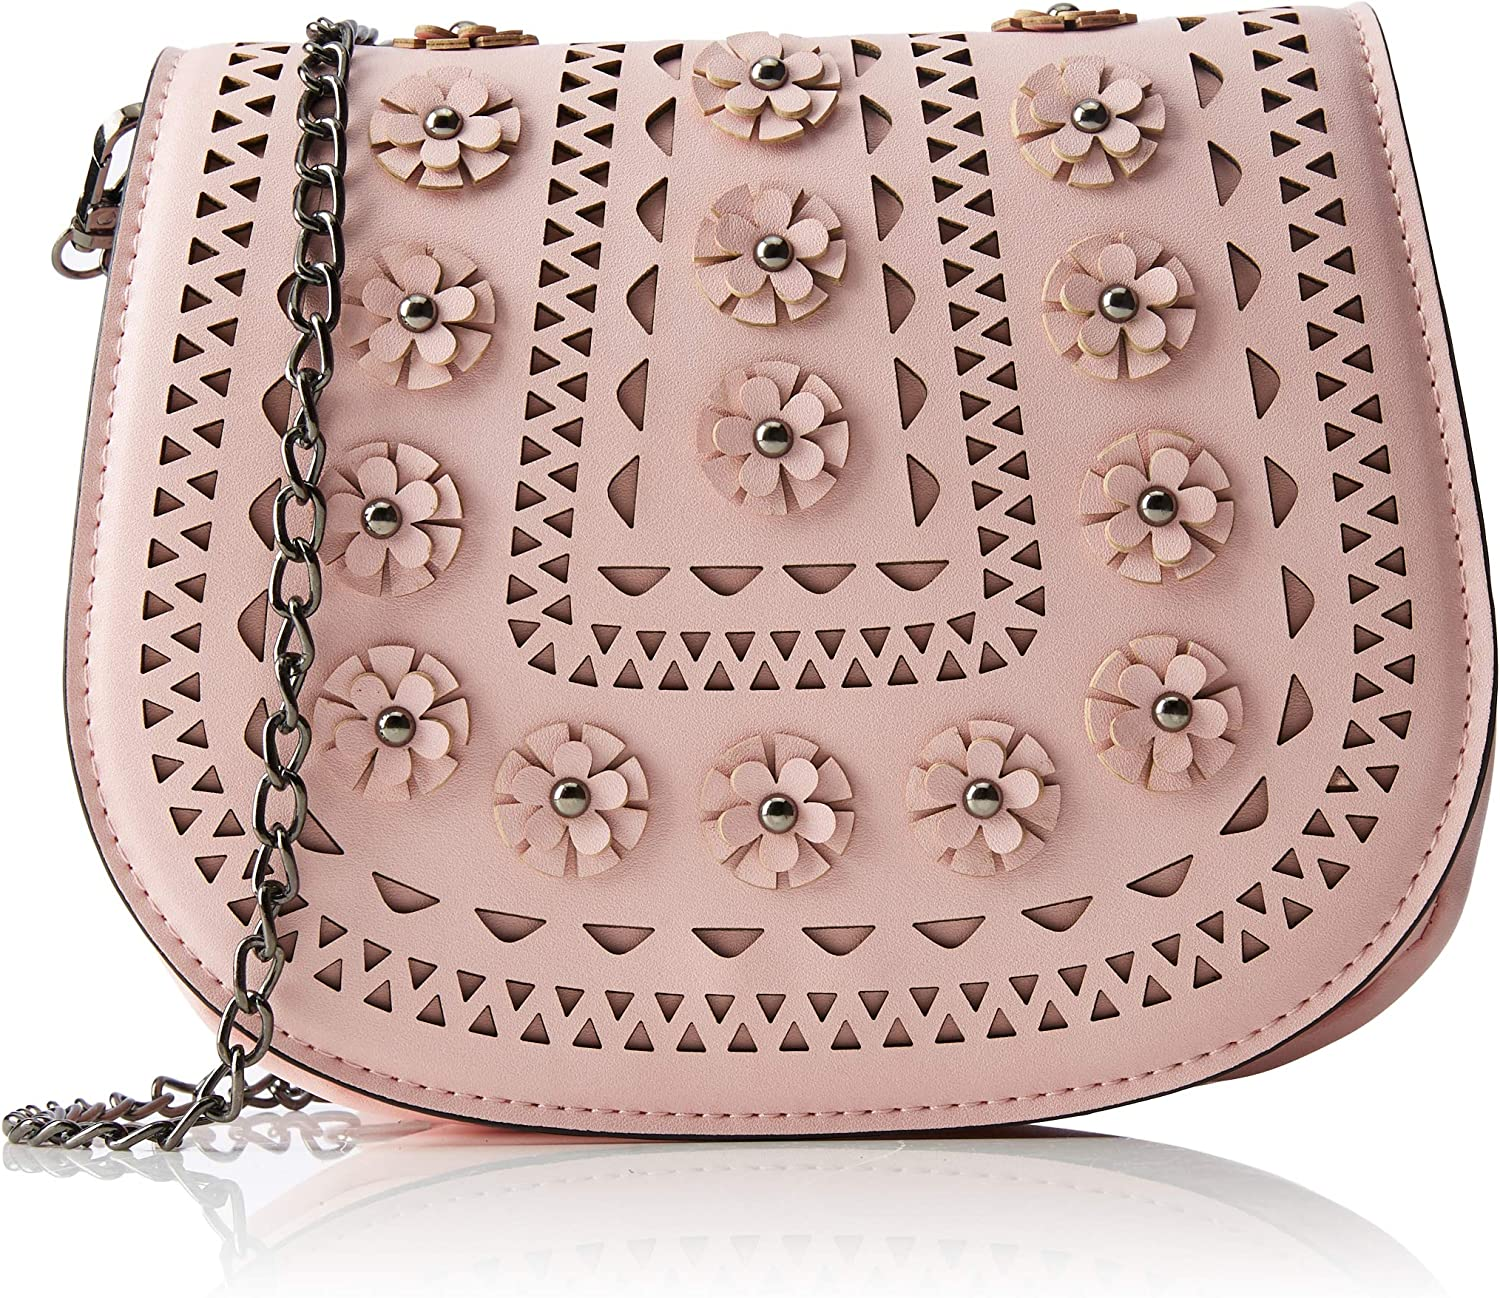 Joe Browns Womens Floral Cut Out Bag with 3D Flowers